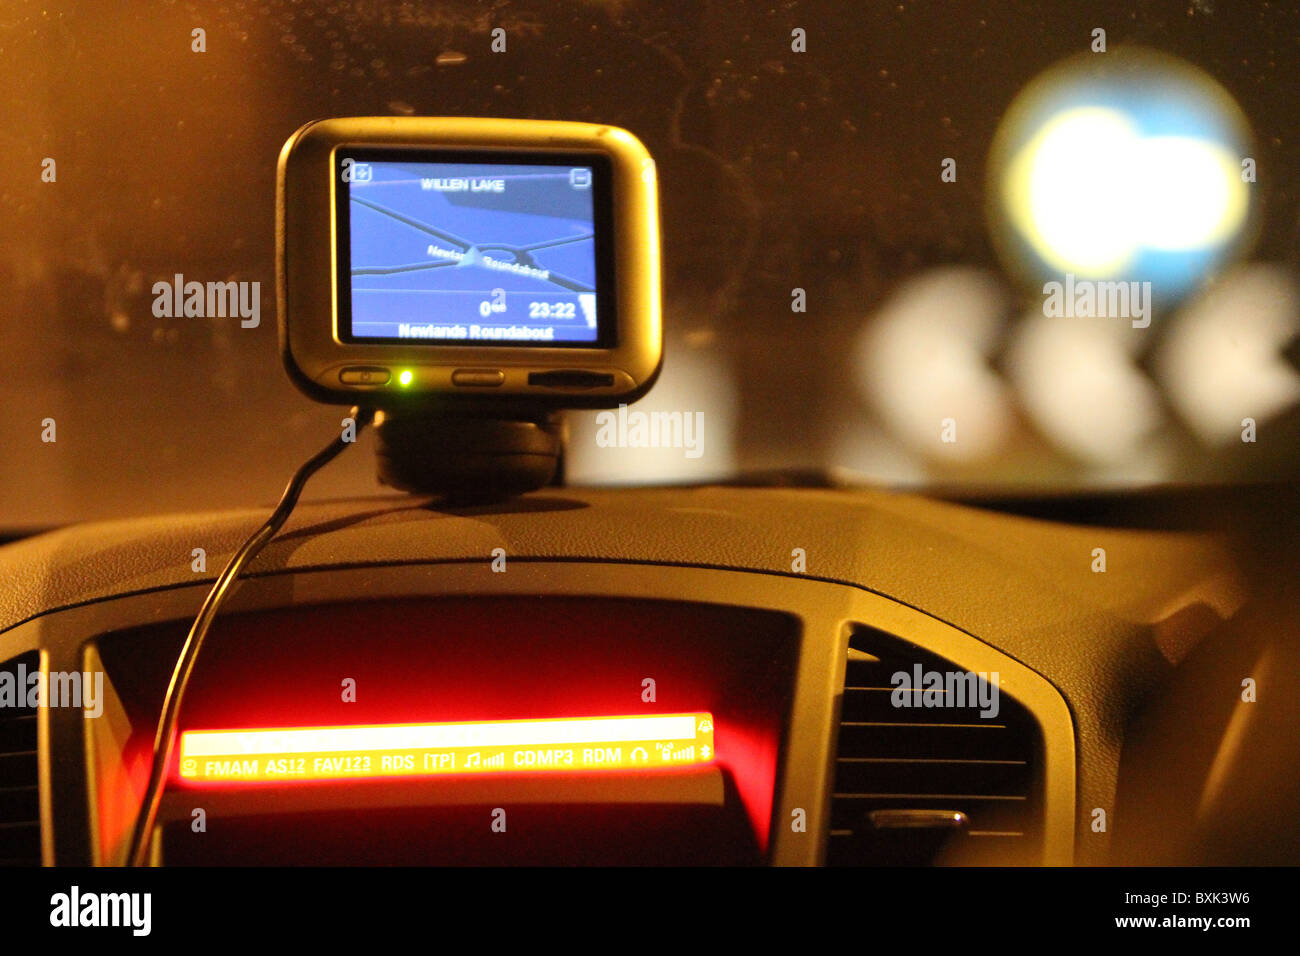 Sat Nav unit perched on a car's dashboard at night - Stock Image